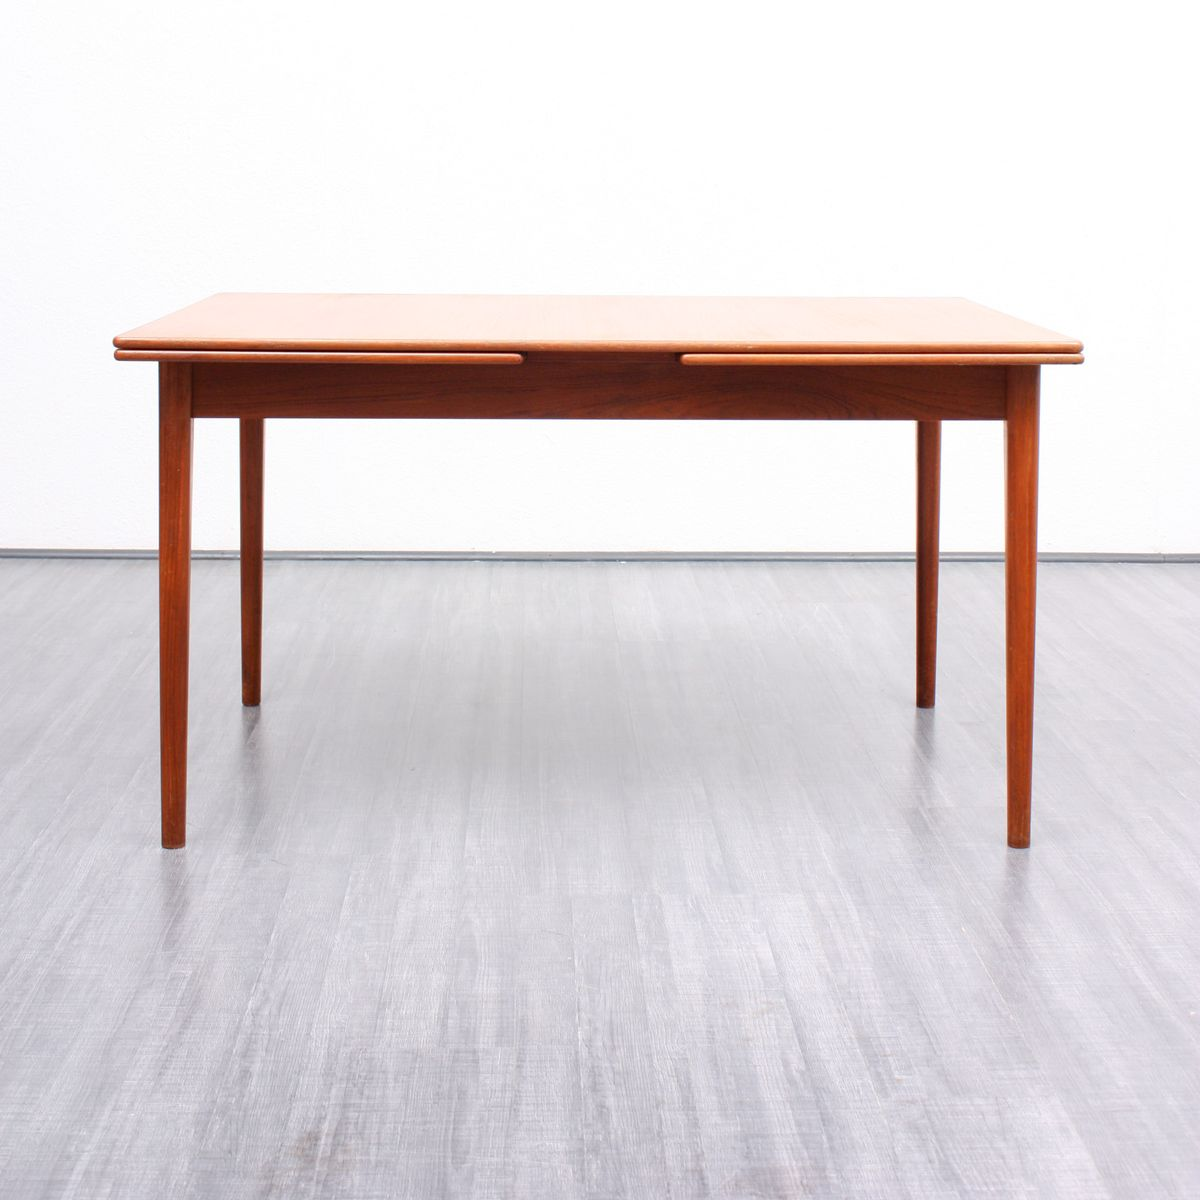 Mid century scandinavian teak dining table by nils jonsson for bra bohag for sale at pamono - Dining table scandinavian ...